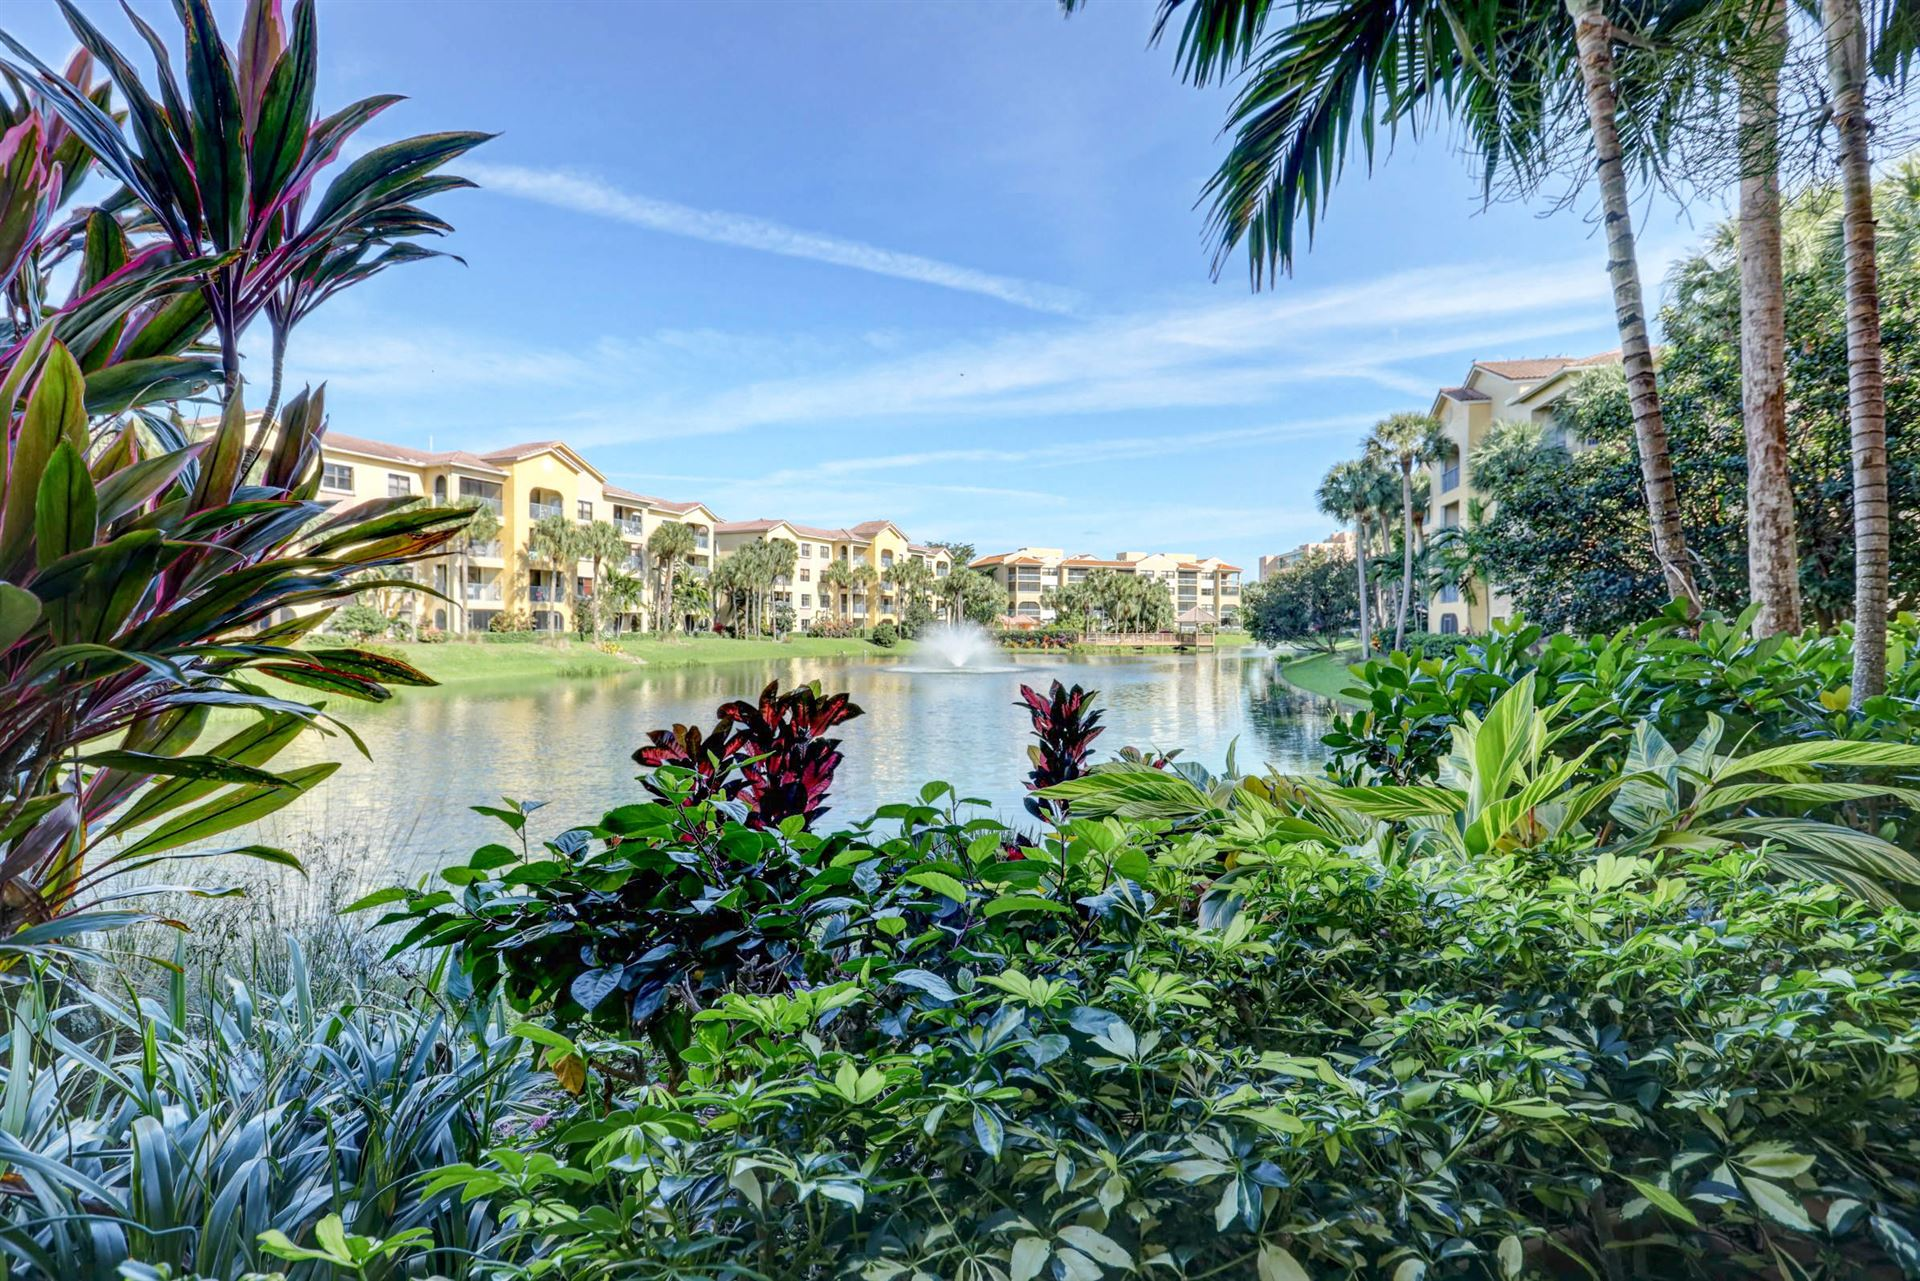 Photo of 300 Uno Lago Drive #102, Juno Beach, FL 33408 (MLS # RX-10621252)